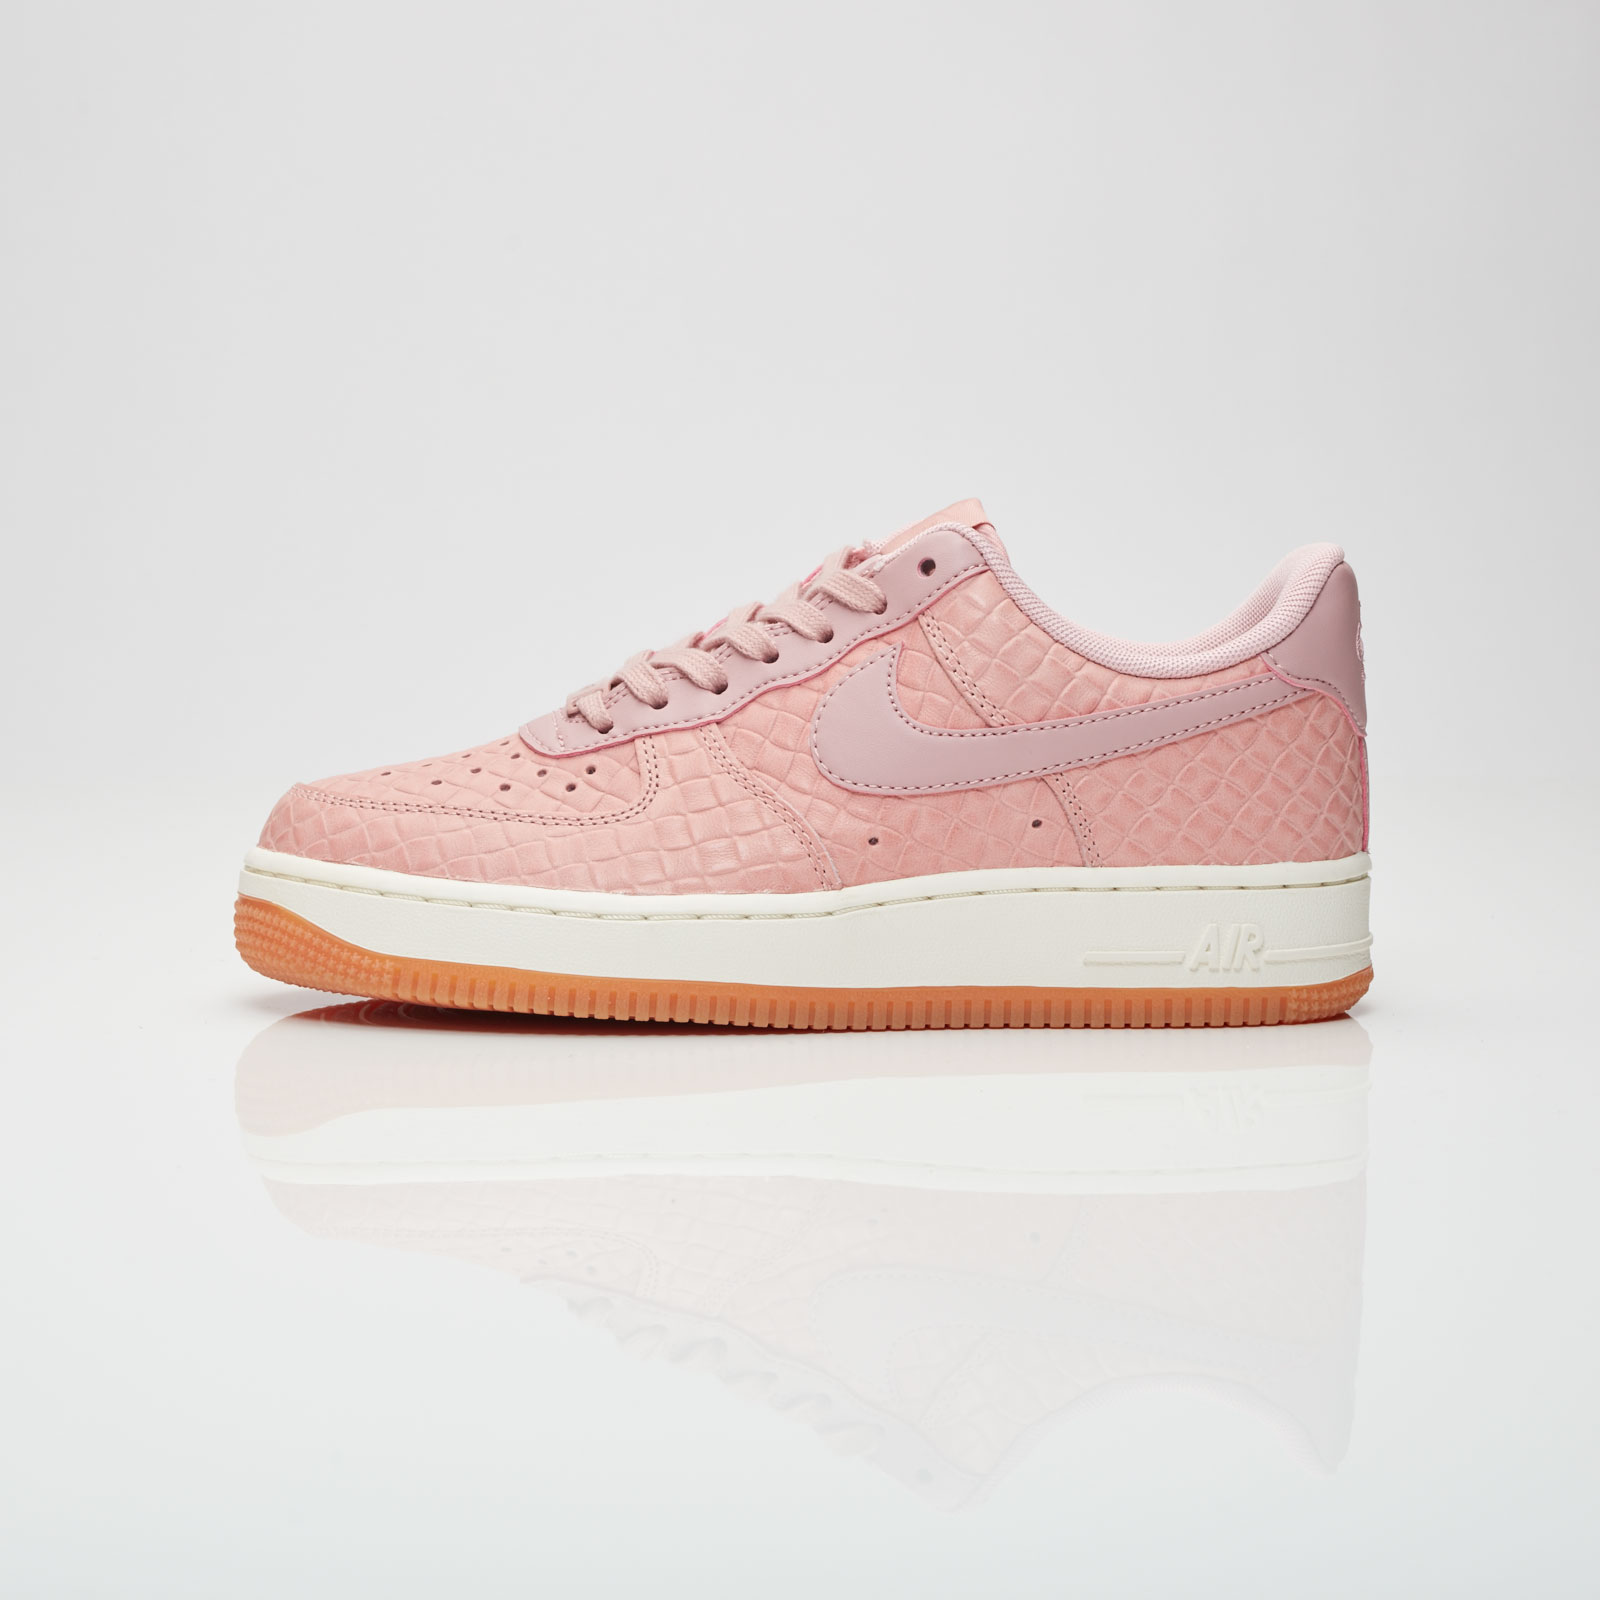 separation shoes 060dd 1f61e Nike Womens Air Force 1 Pink Glaze - Air 23 - Air Jordan Release Dates,  Foamposite, Air Max, and More